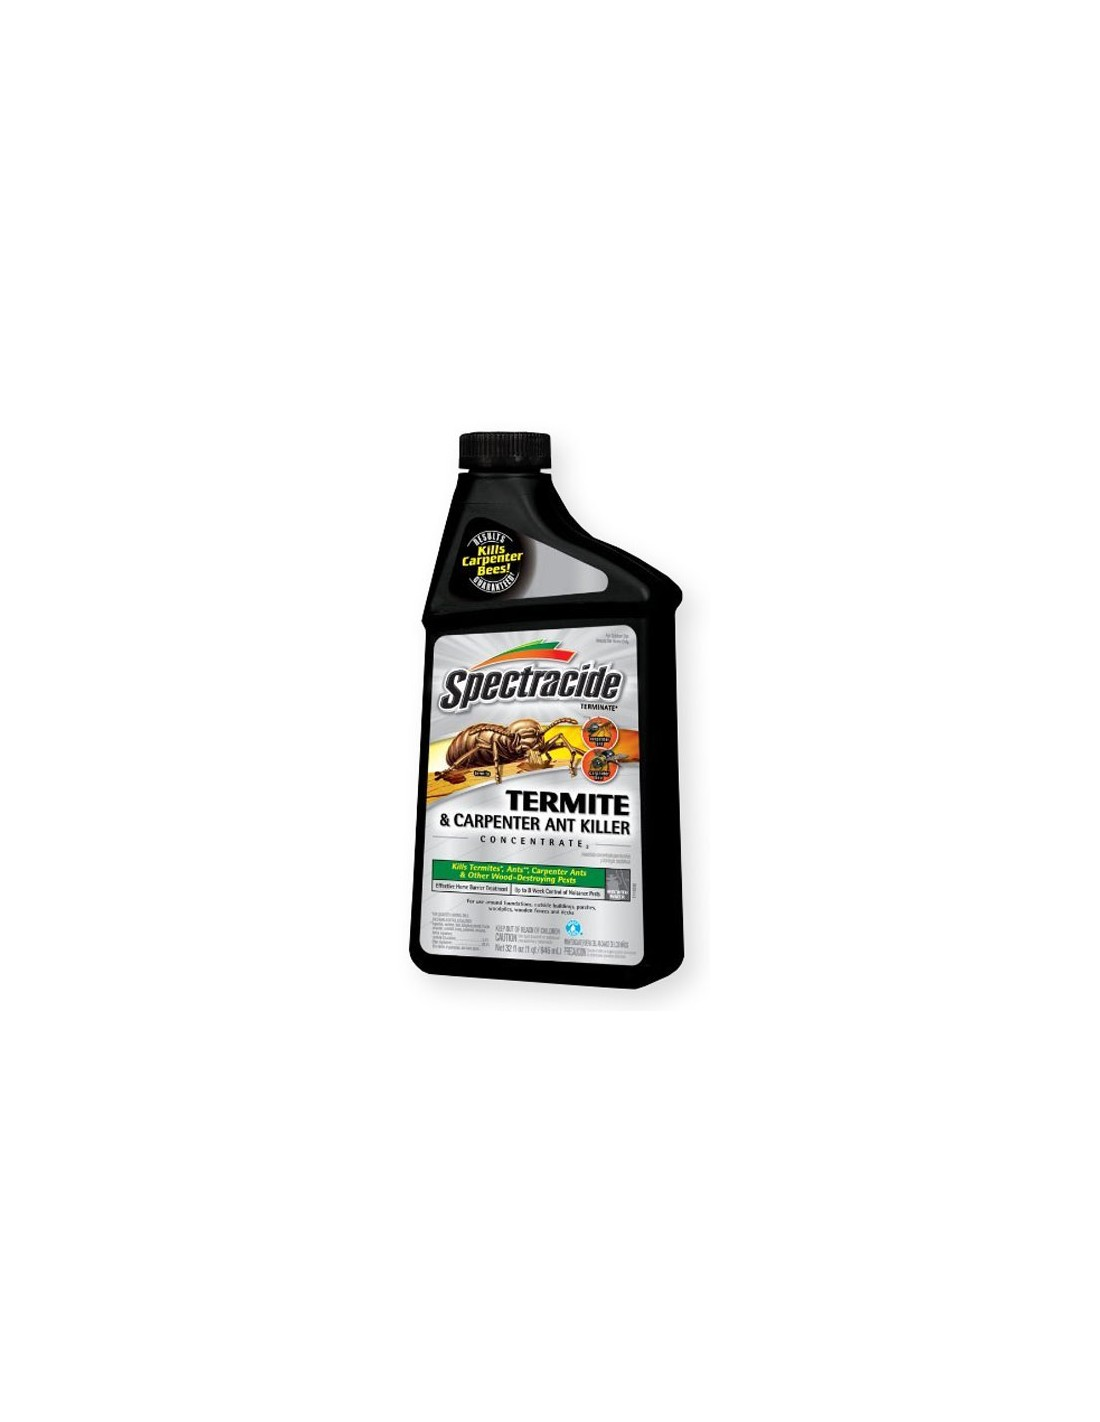 does this work on boxelder bugs